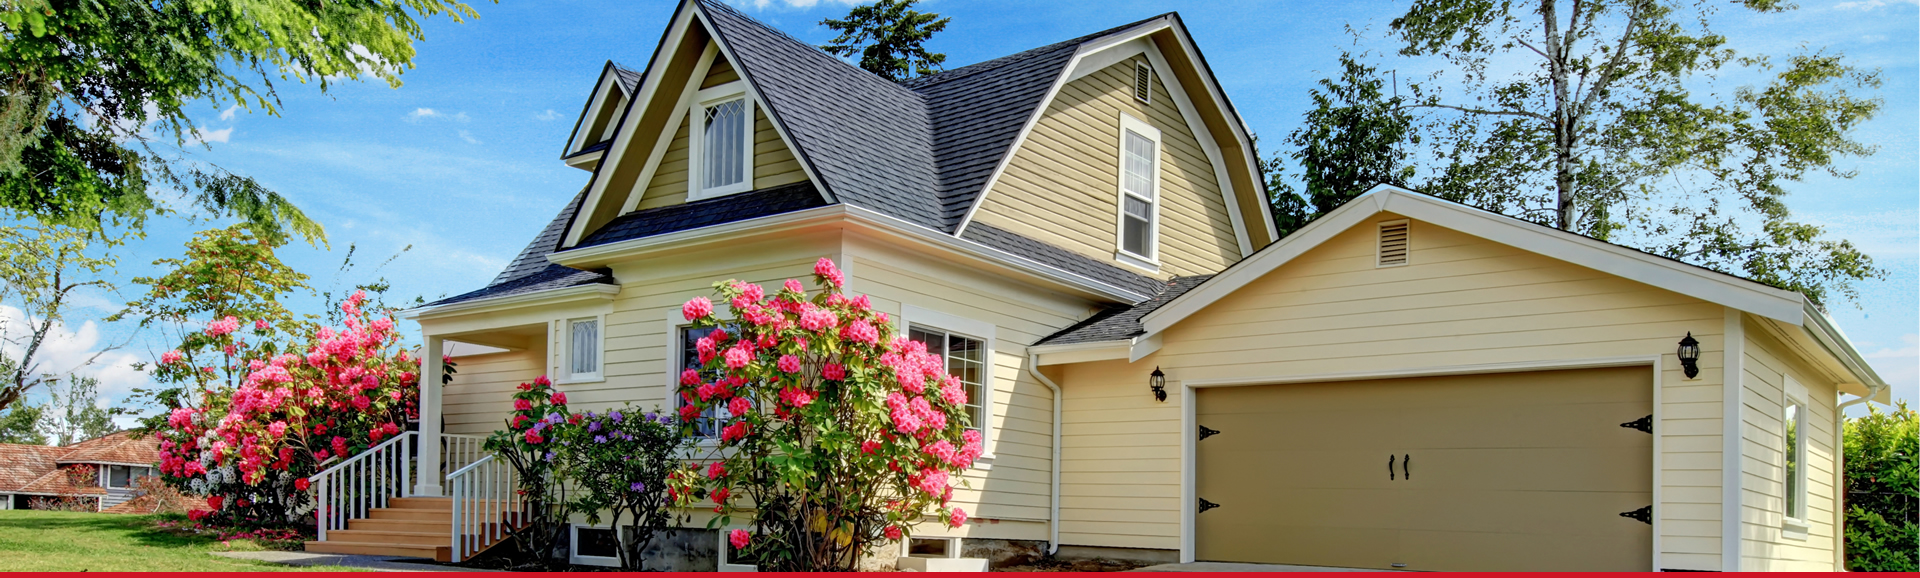 Services for Right Sizing Your Home